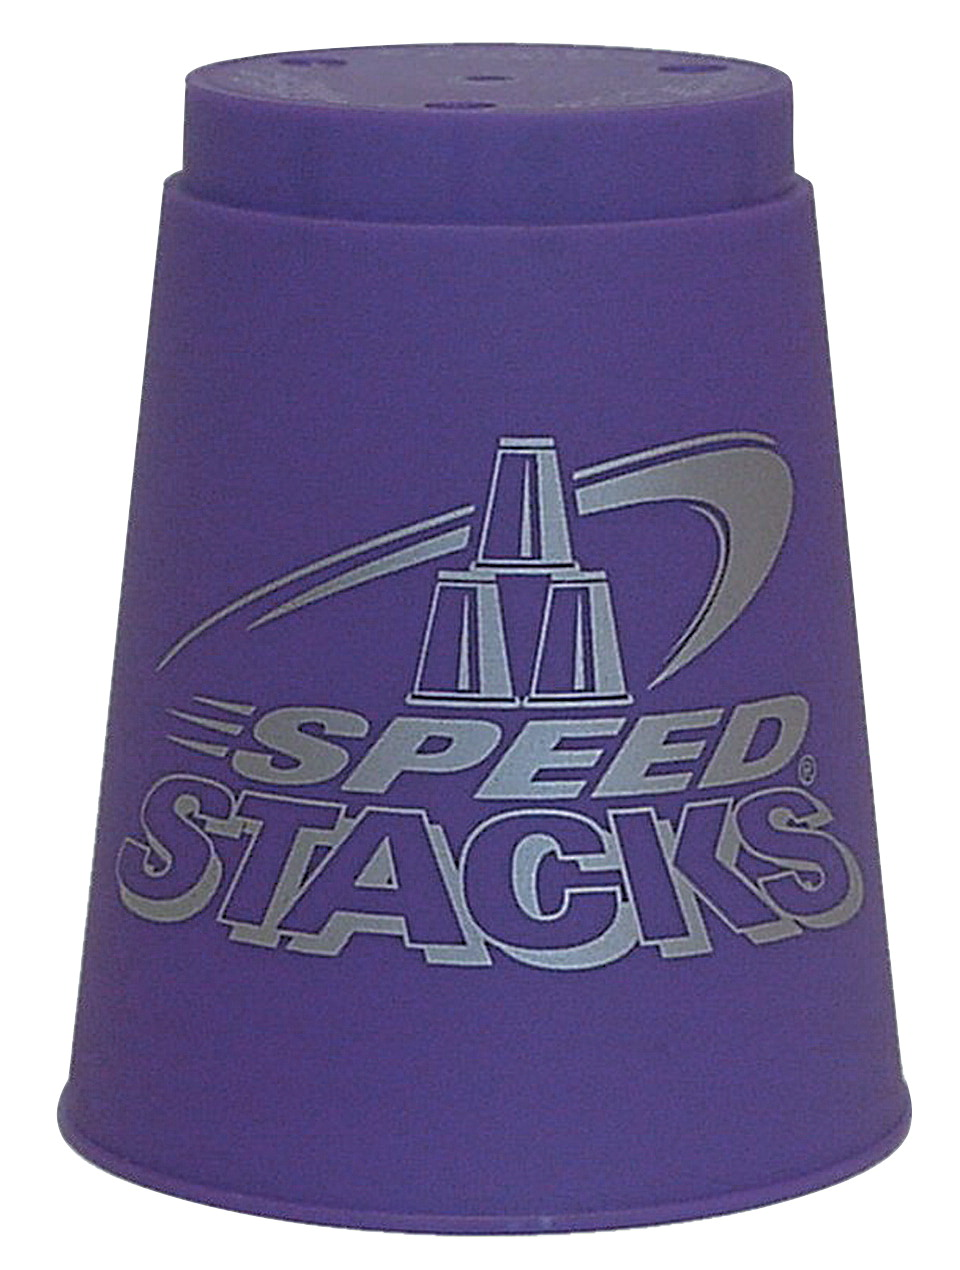 Baseball And Softball Baseball Athletic Supporter Cups - 018492 - Speed Stacks Cups; Set Of 12; Purple 018492